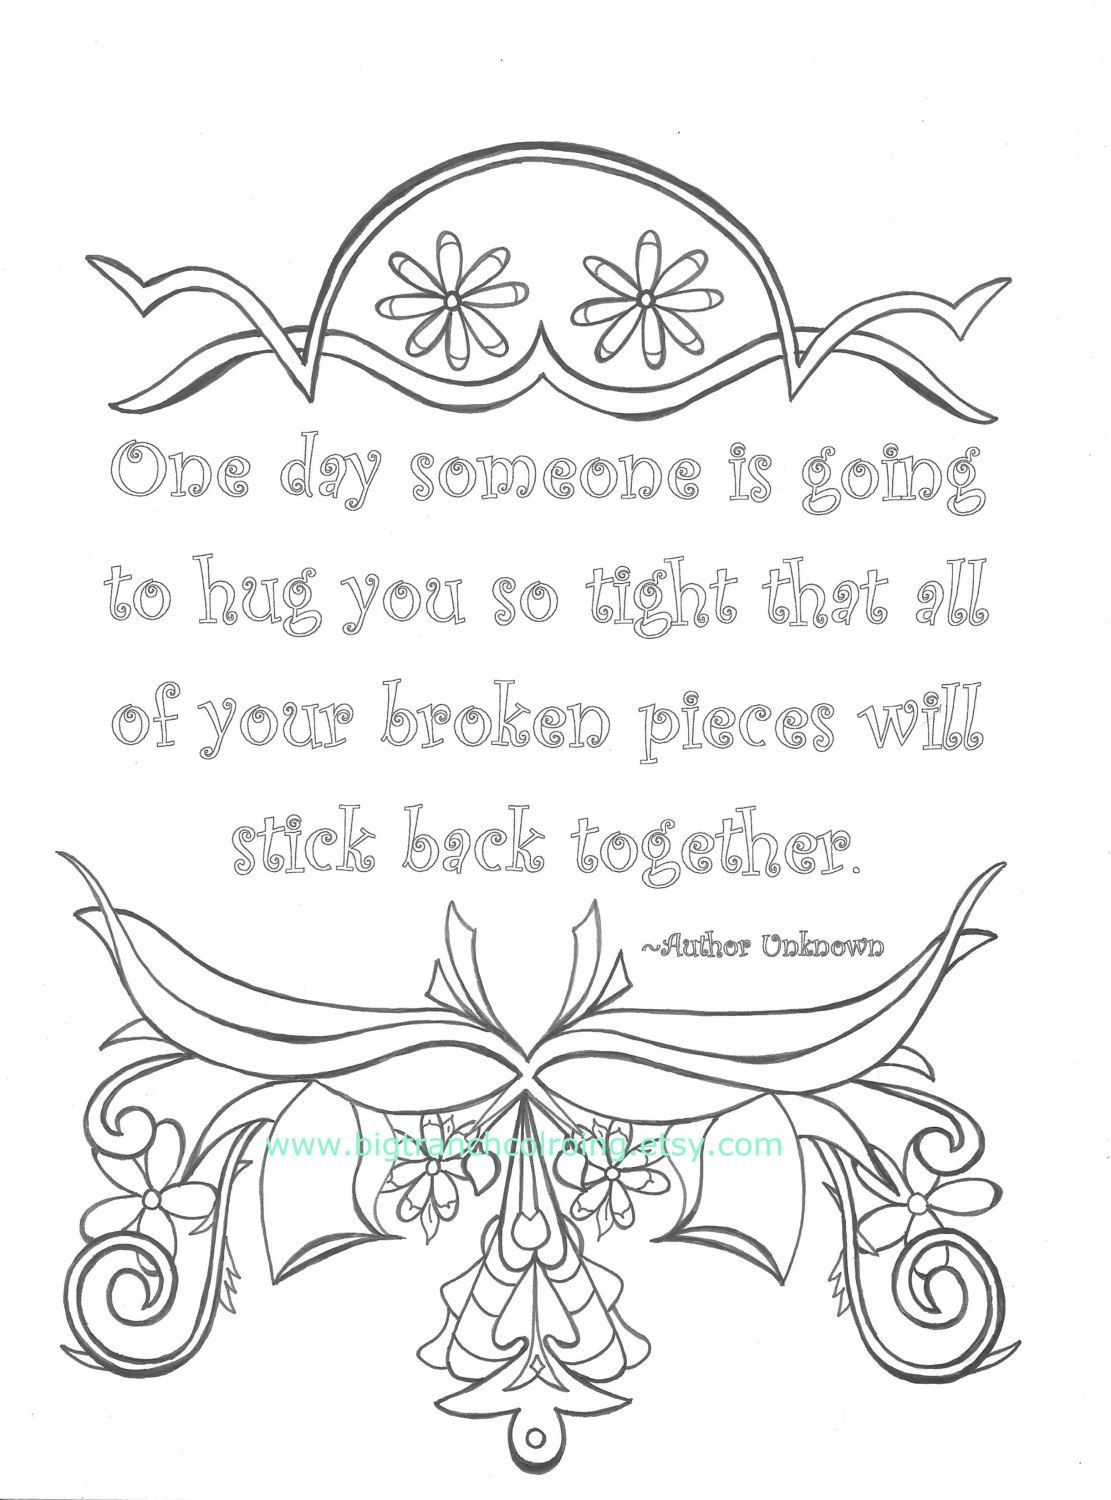 Adult coloring pages with quotes printable - Adult Coloring Page Colouring Coloring For Grown Ups Hug Quote Hand Drawn Printable Digital Download